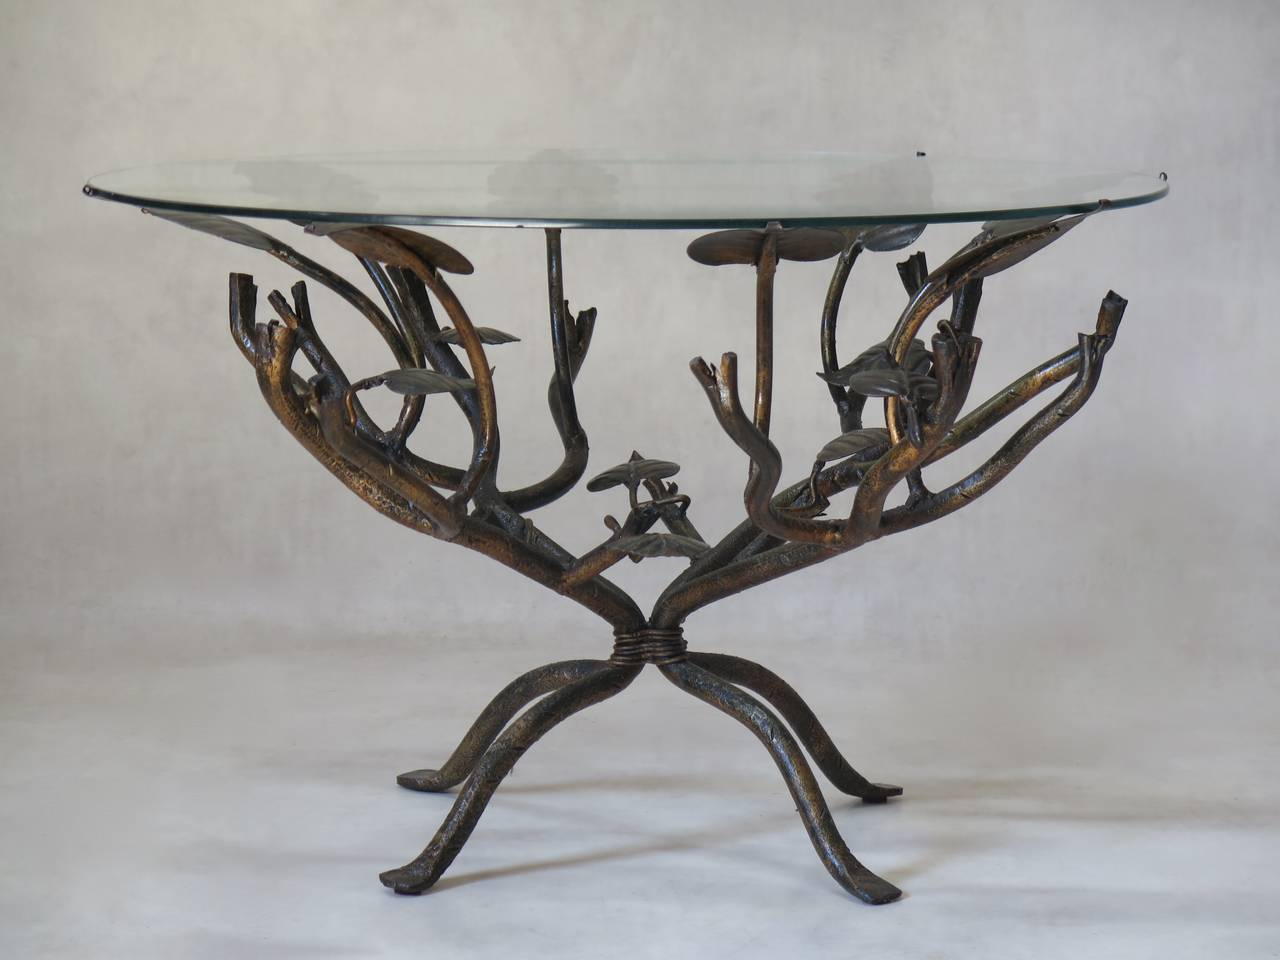 Charming Circular Coffee Table With A Base Of Twigs And Leaves Made Solid Wrought Iron